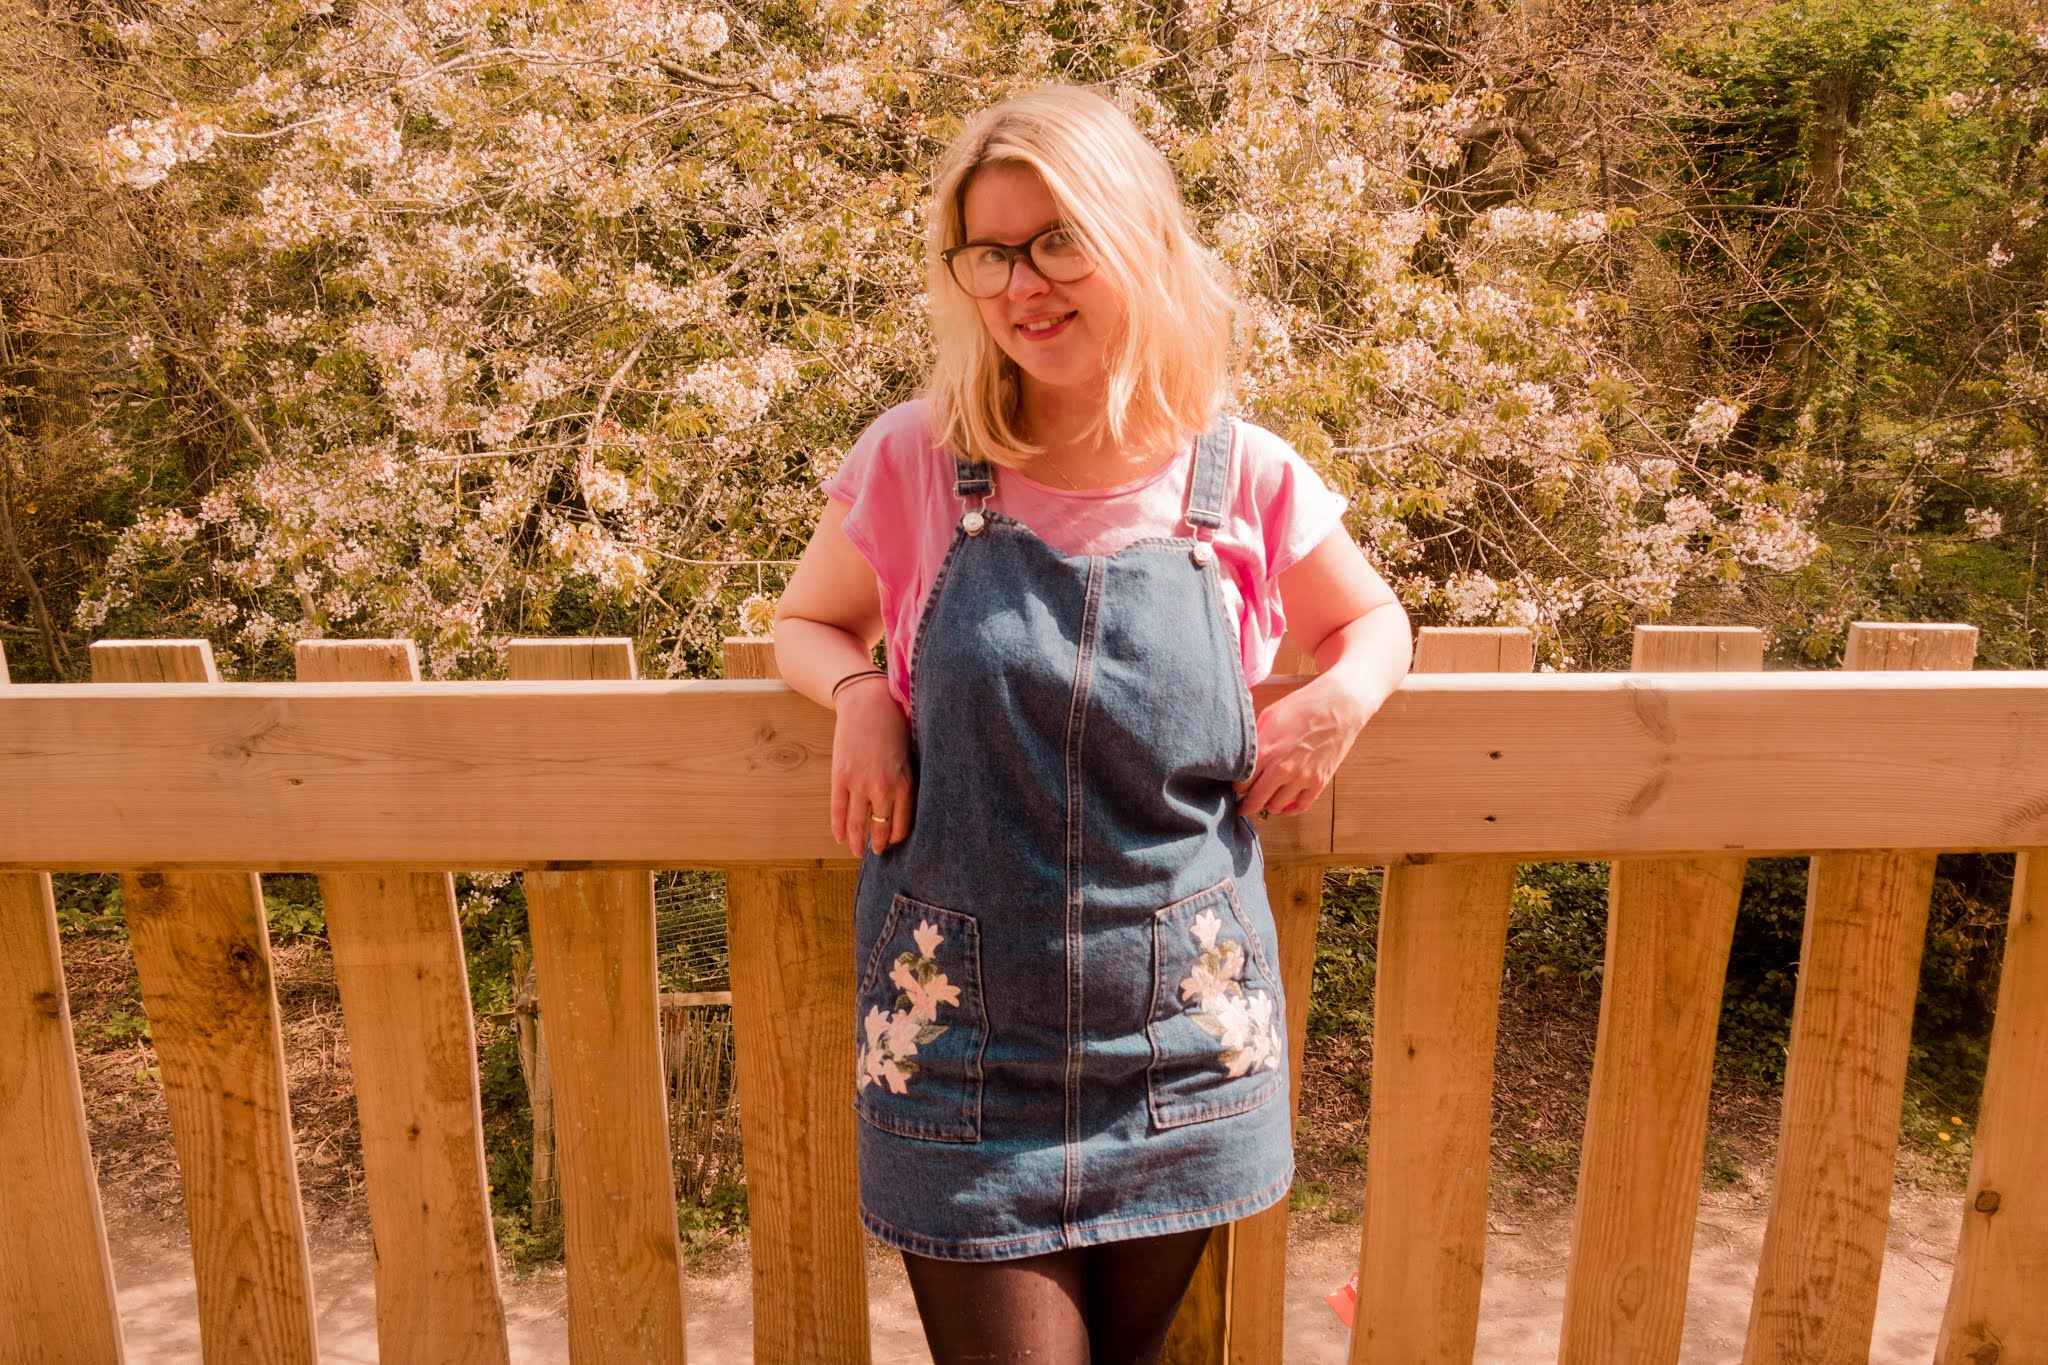 Fashion blogger Chloe Harriets wearing a denim dress and pink tee - article on trying